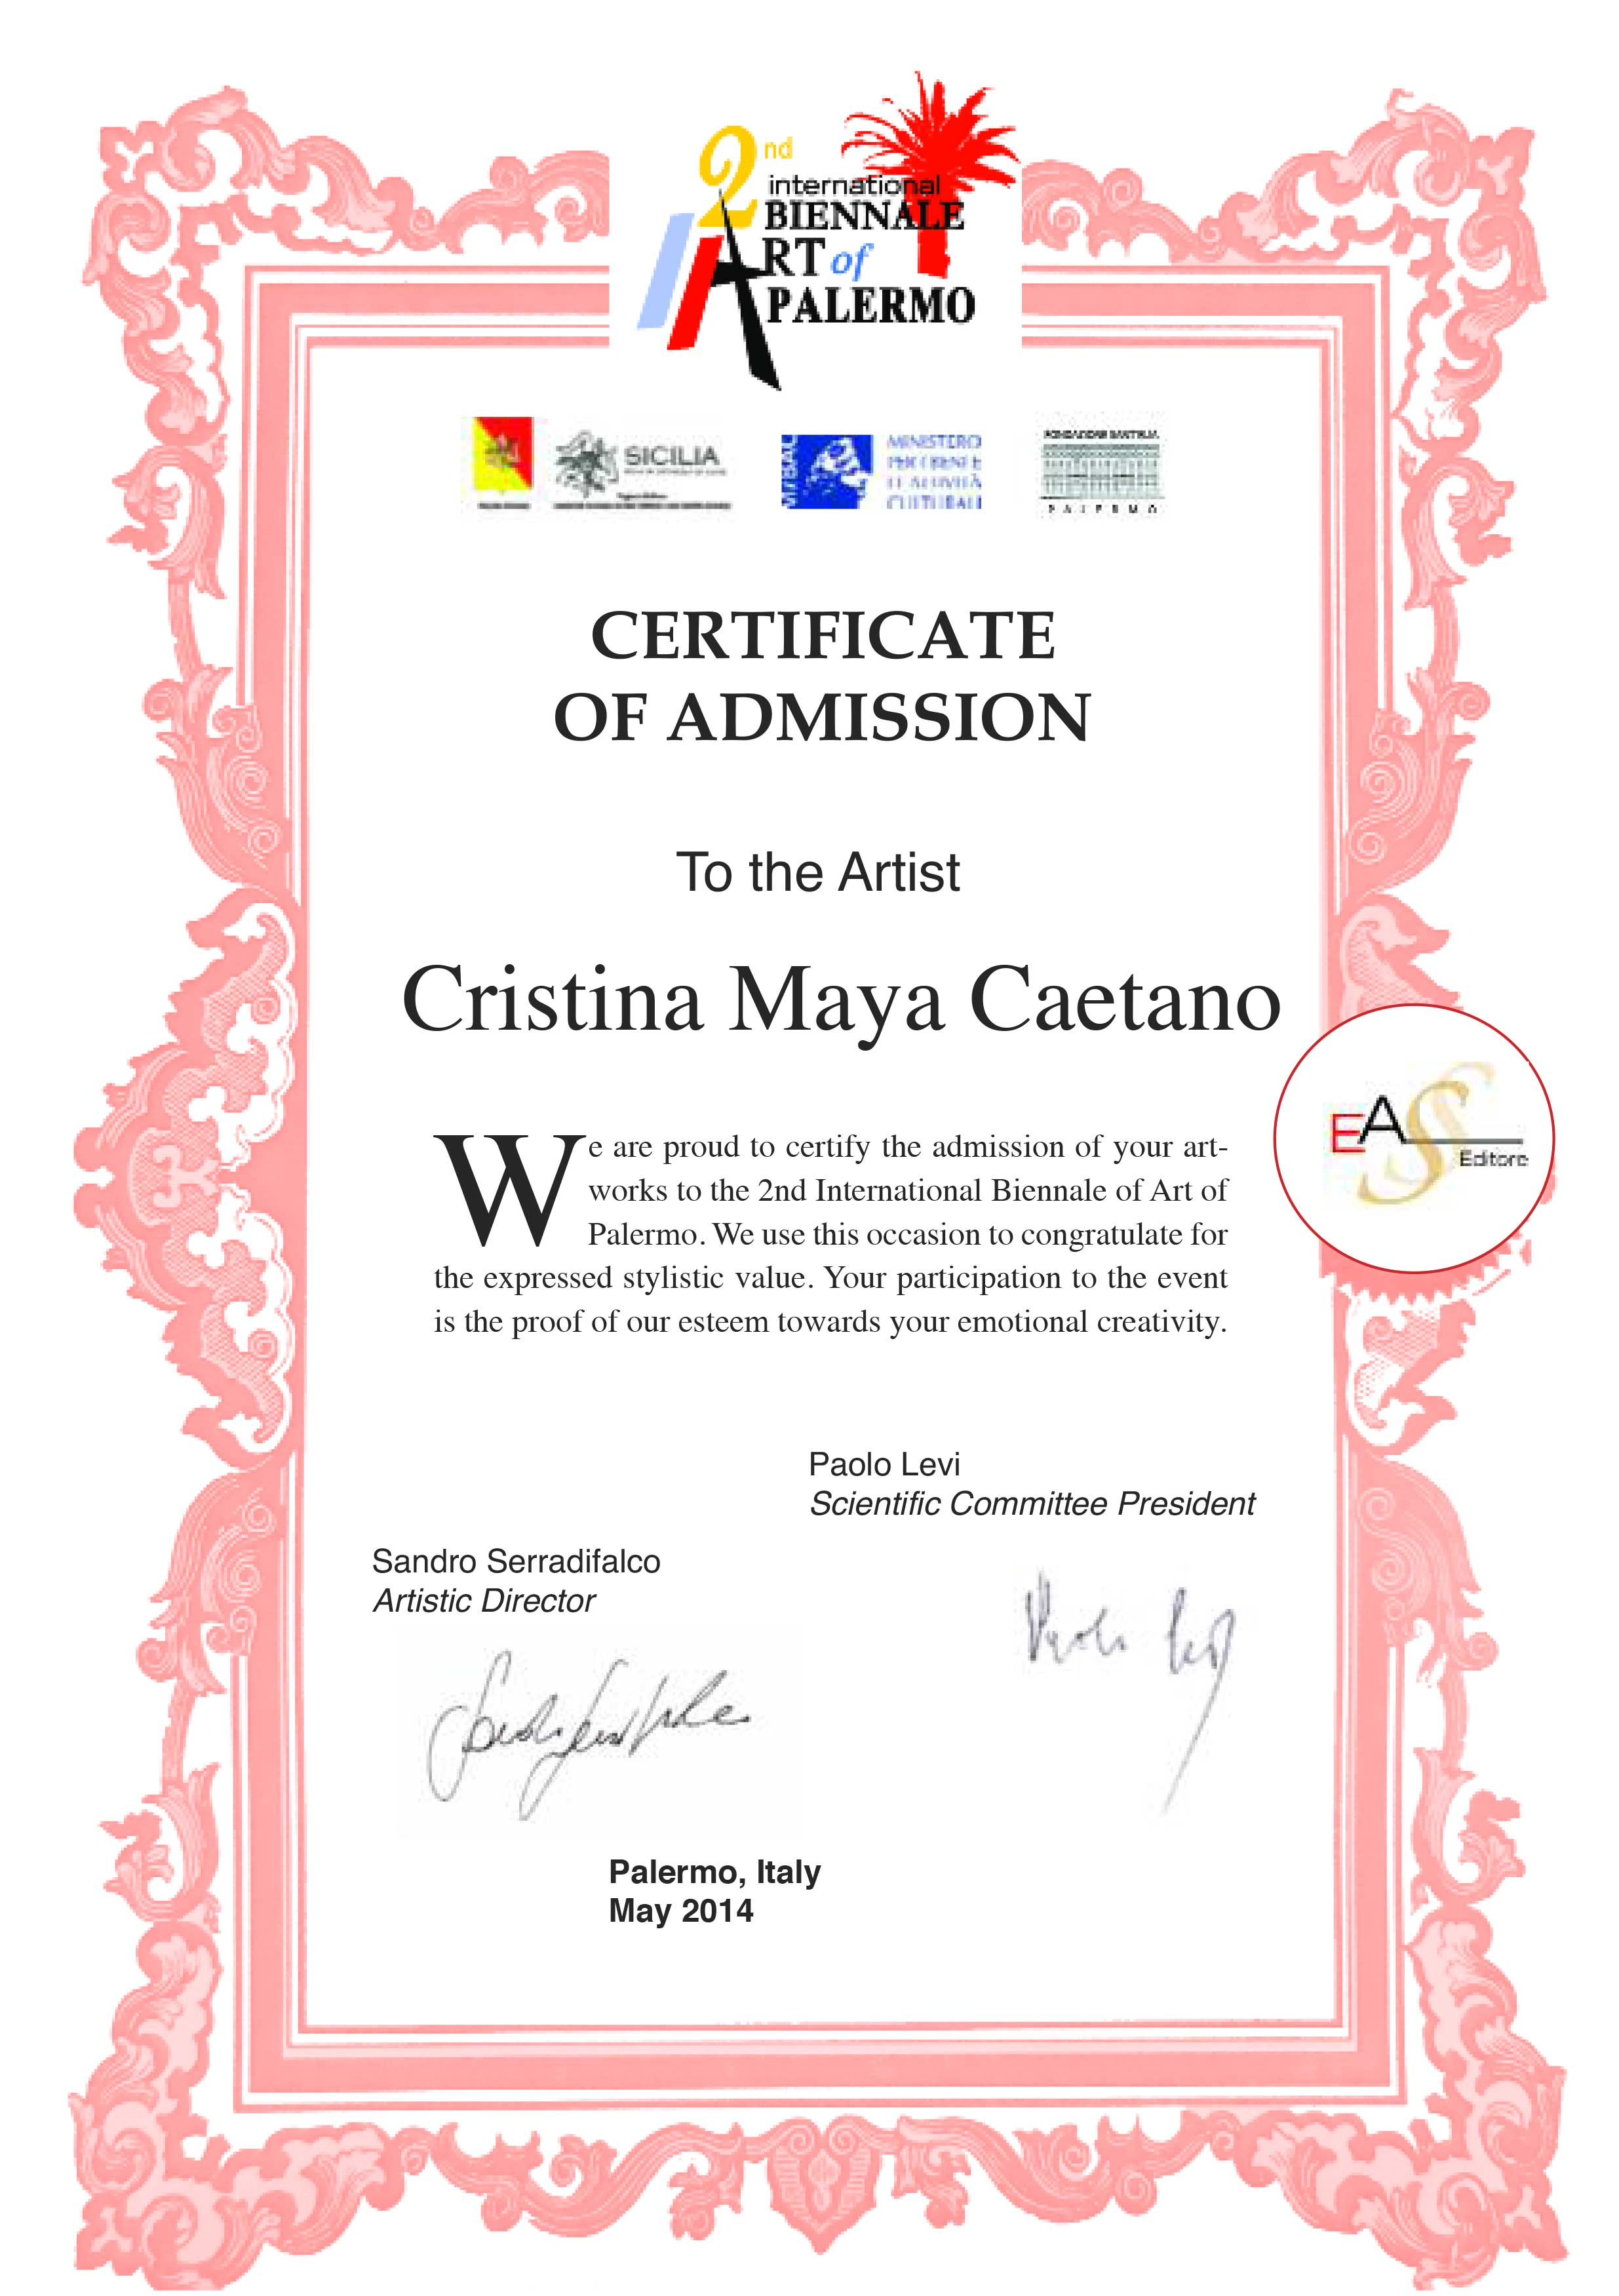 Awards cristina maya caetano 2014 ii international biennial art of palermo certificate of admission for the expressed stylistic value siciliy italy ea 1betcityfo Choice Image